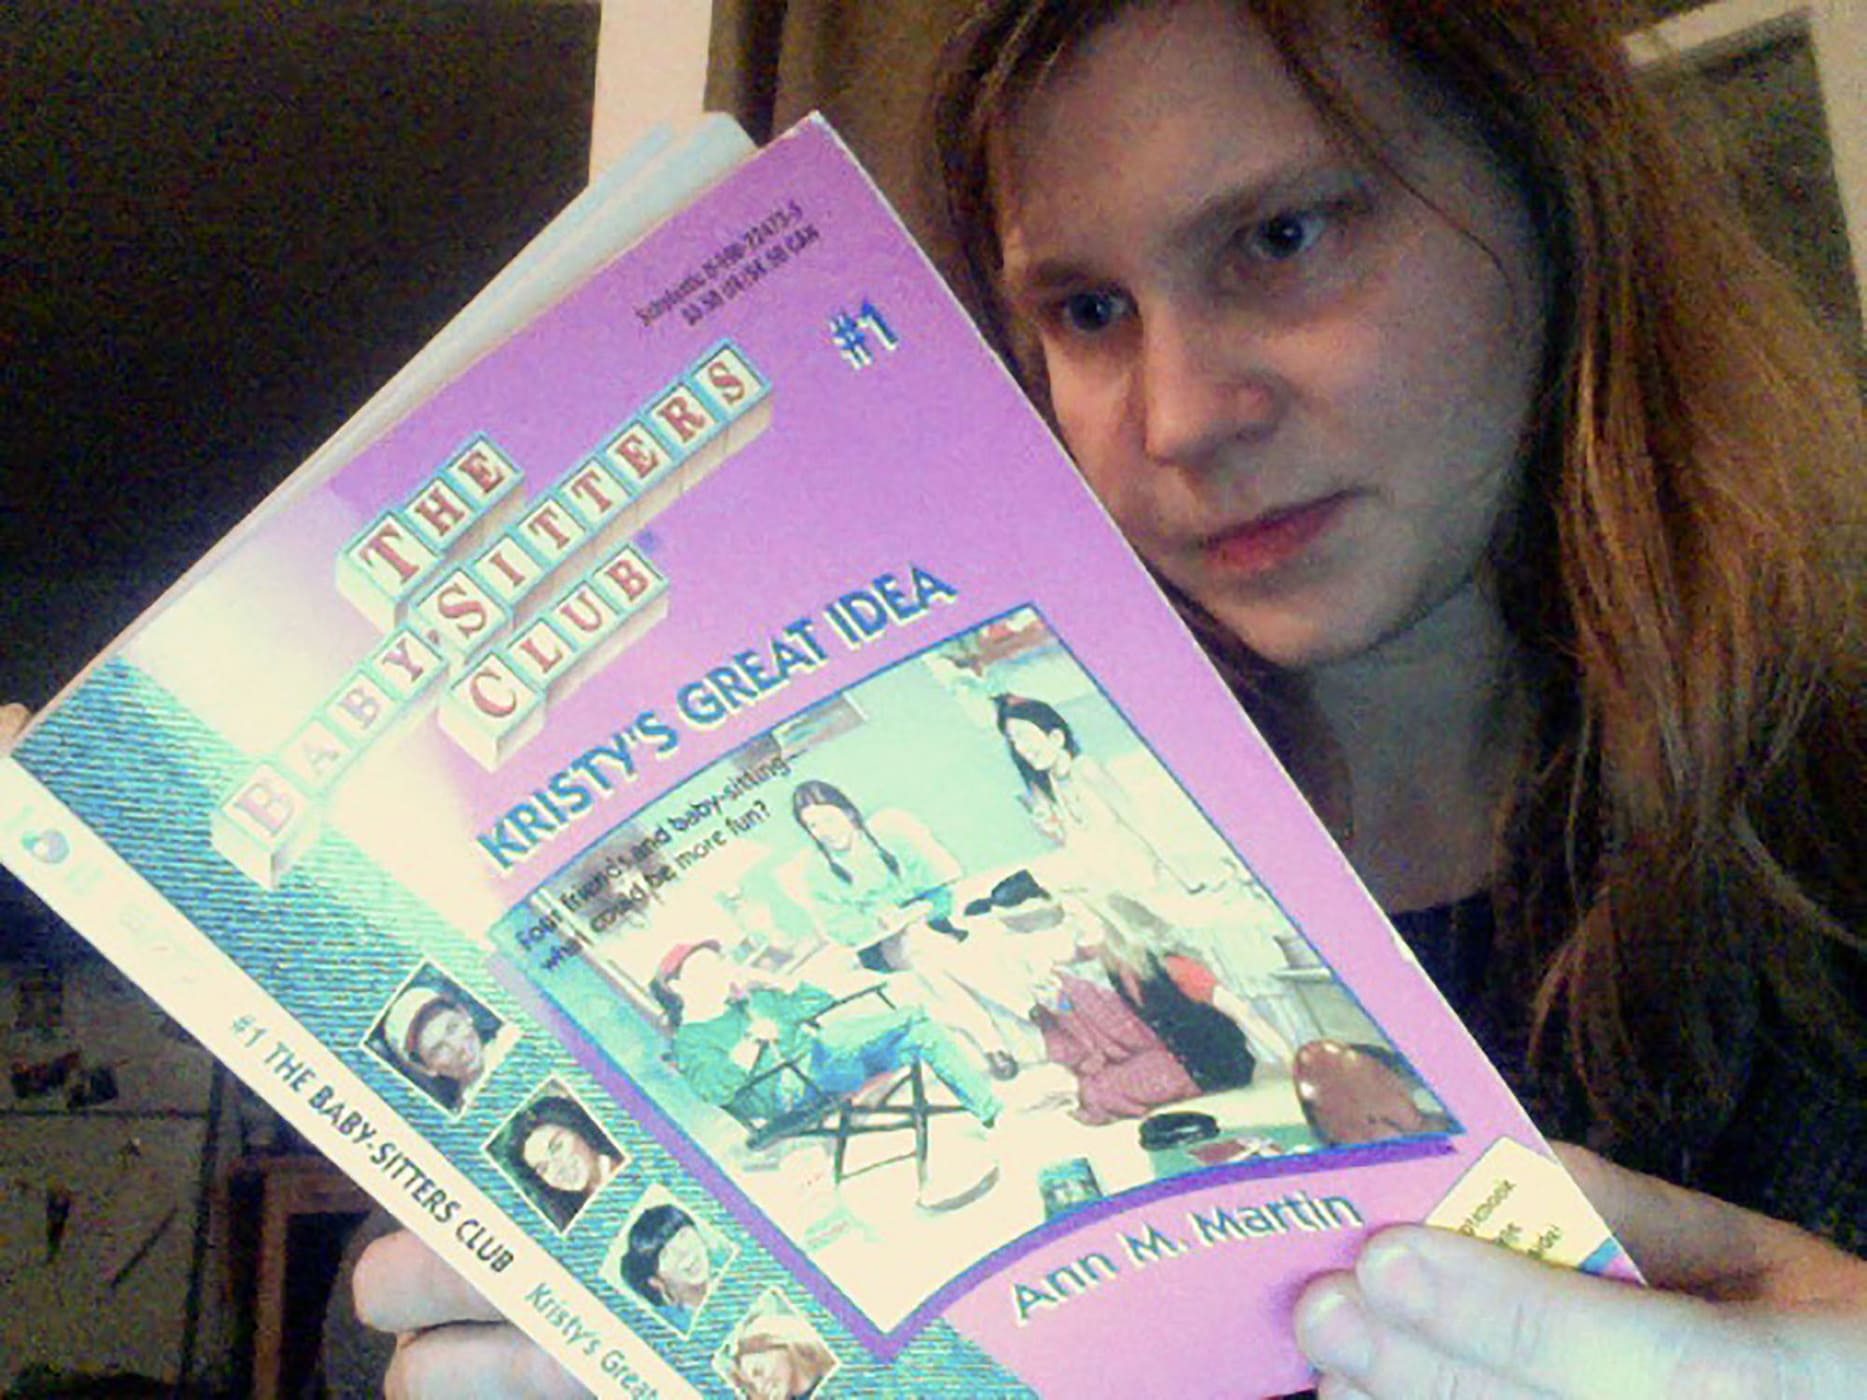 Val reads Baby-Sitters Club Book #1 - Kristy's Great Idea